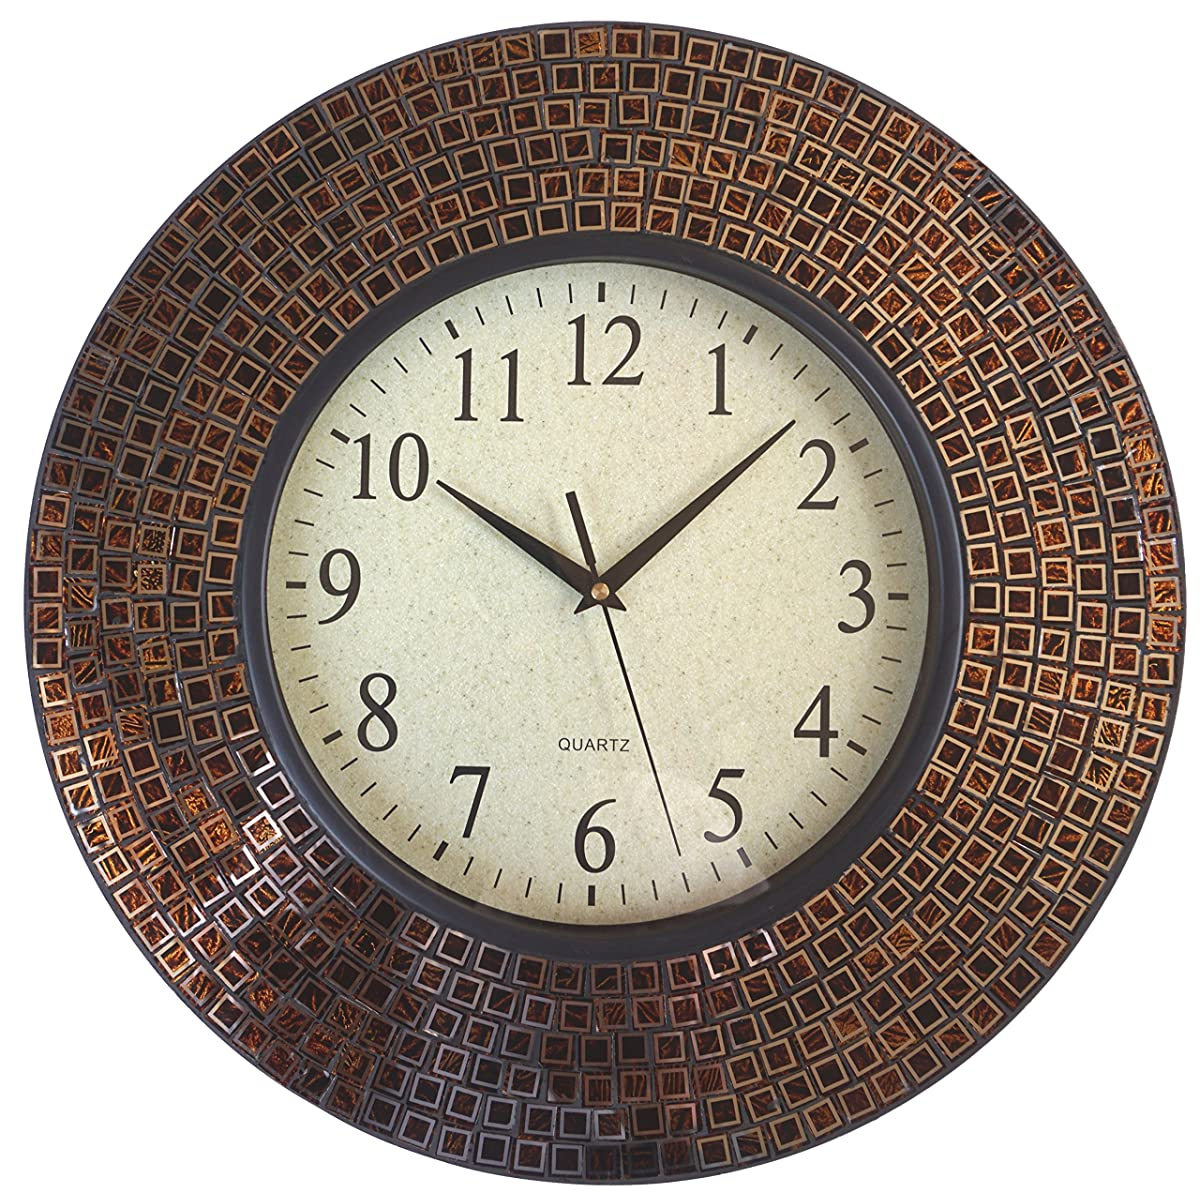 "LuLu Decor, 16"" Amber Checkered Mosaic Wall Clock with 9.5"" Glass Dial, Silent Movement for Living Room & Office Space(LP80)"